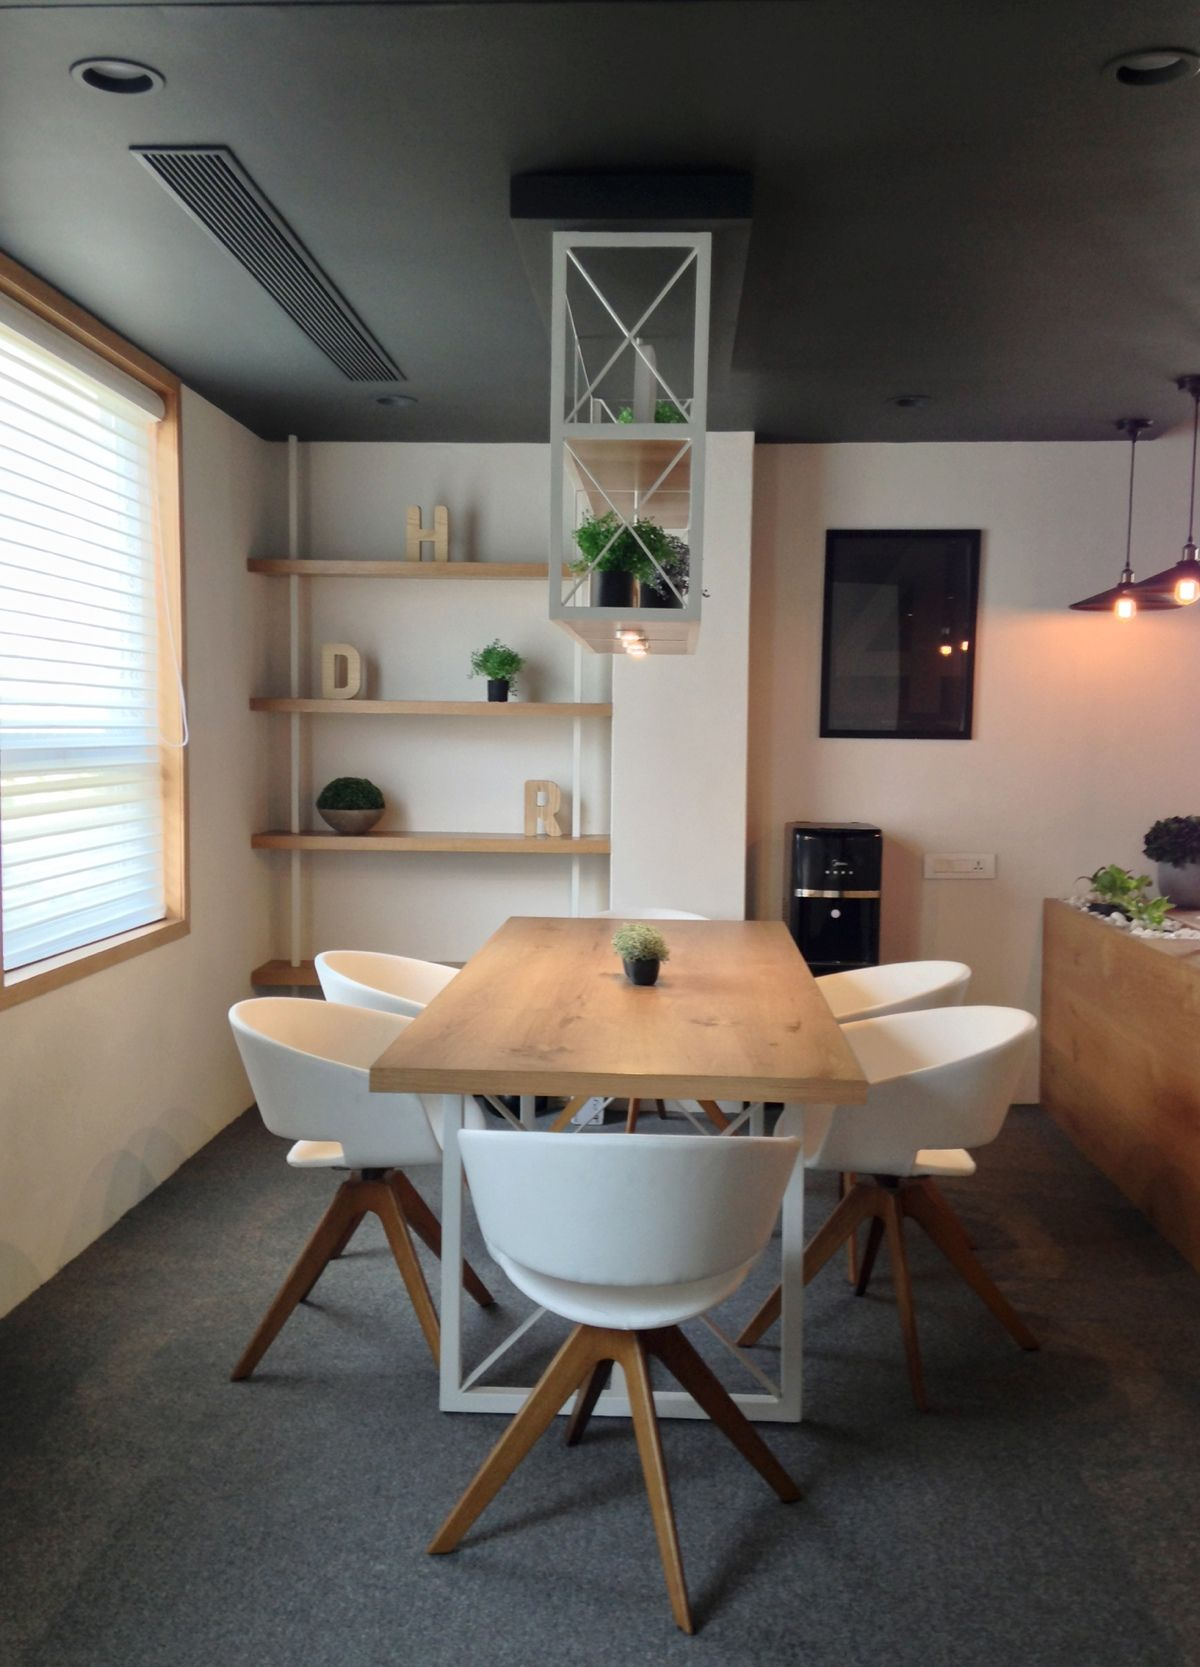 Meeting Room Interior Design Ideas: A Type-face Design Firm's Office By YellowSub Studio